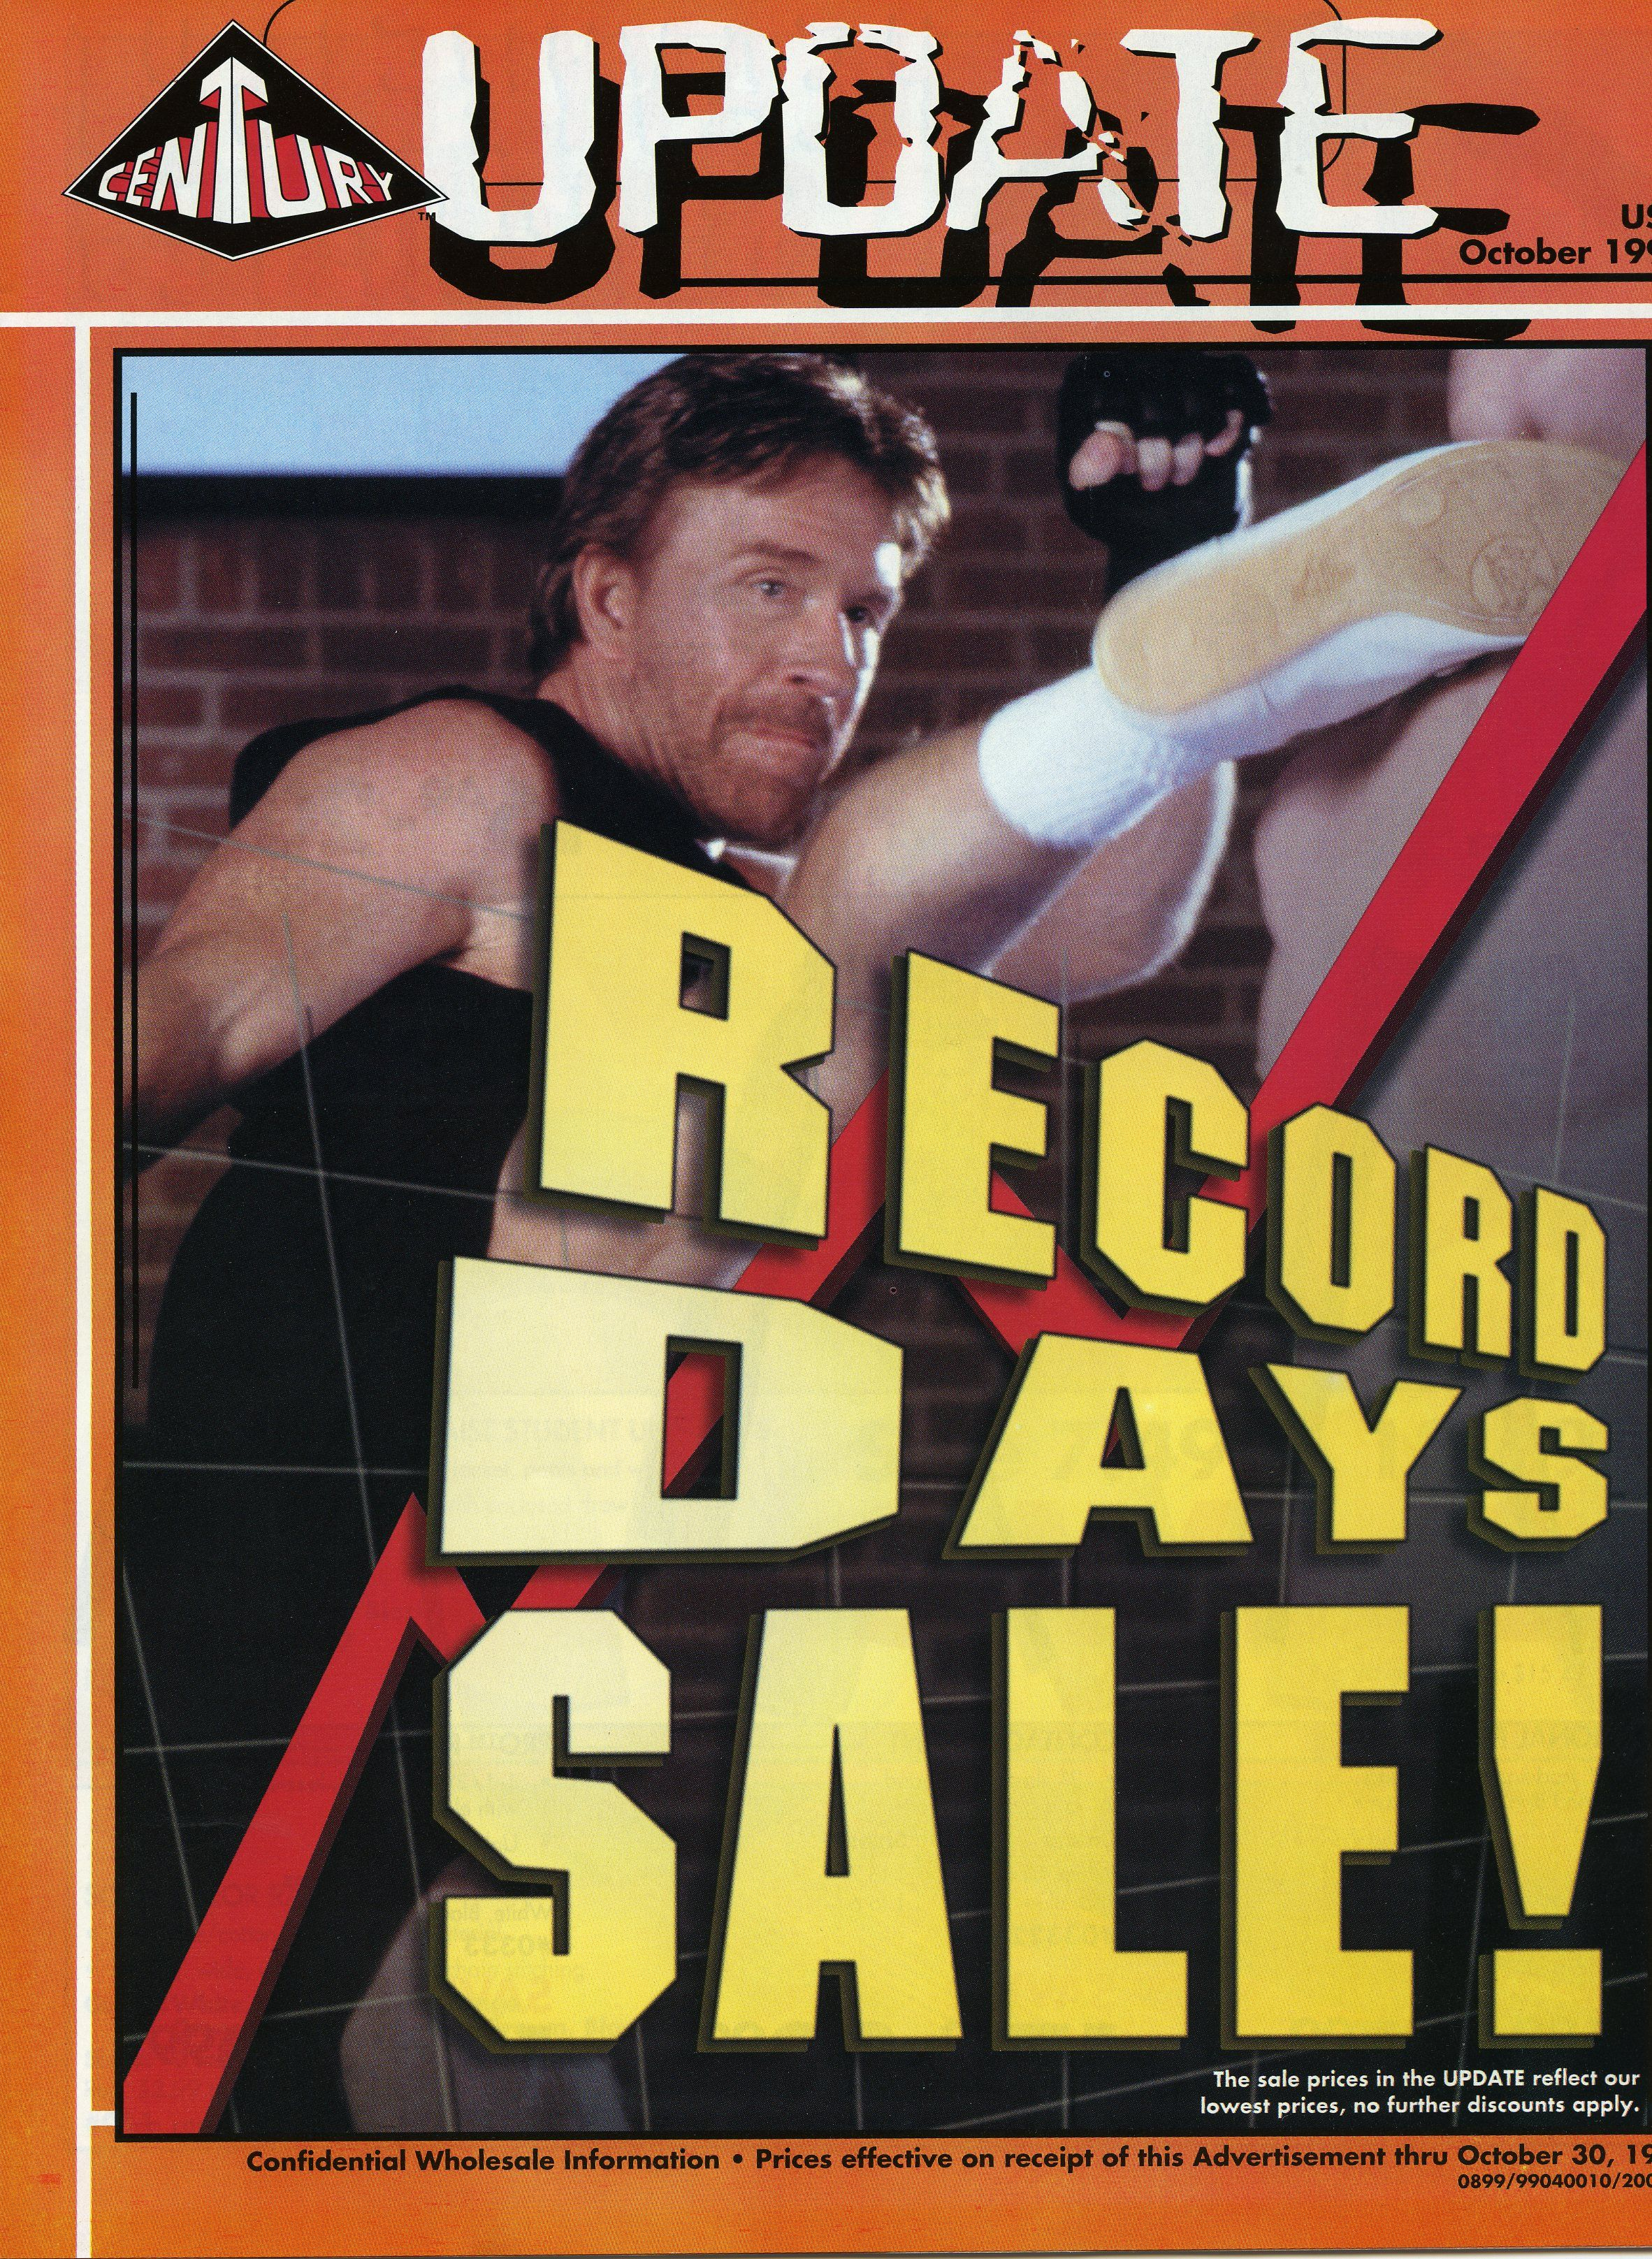 Throwback sale flier from Century Martial Arts featuring